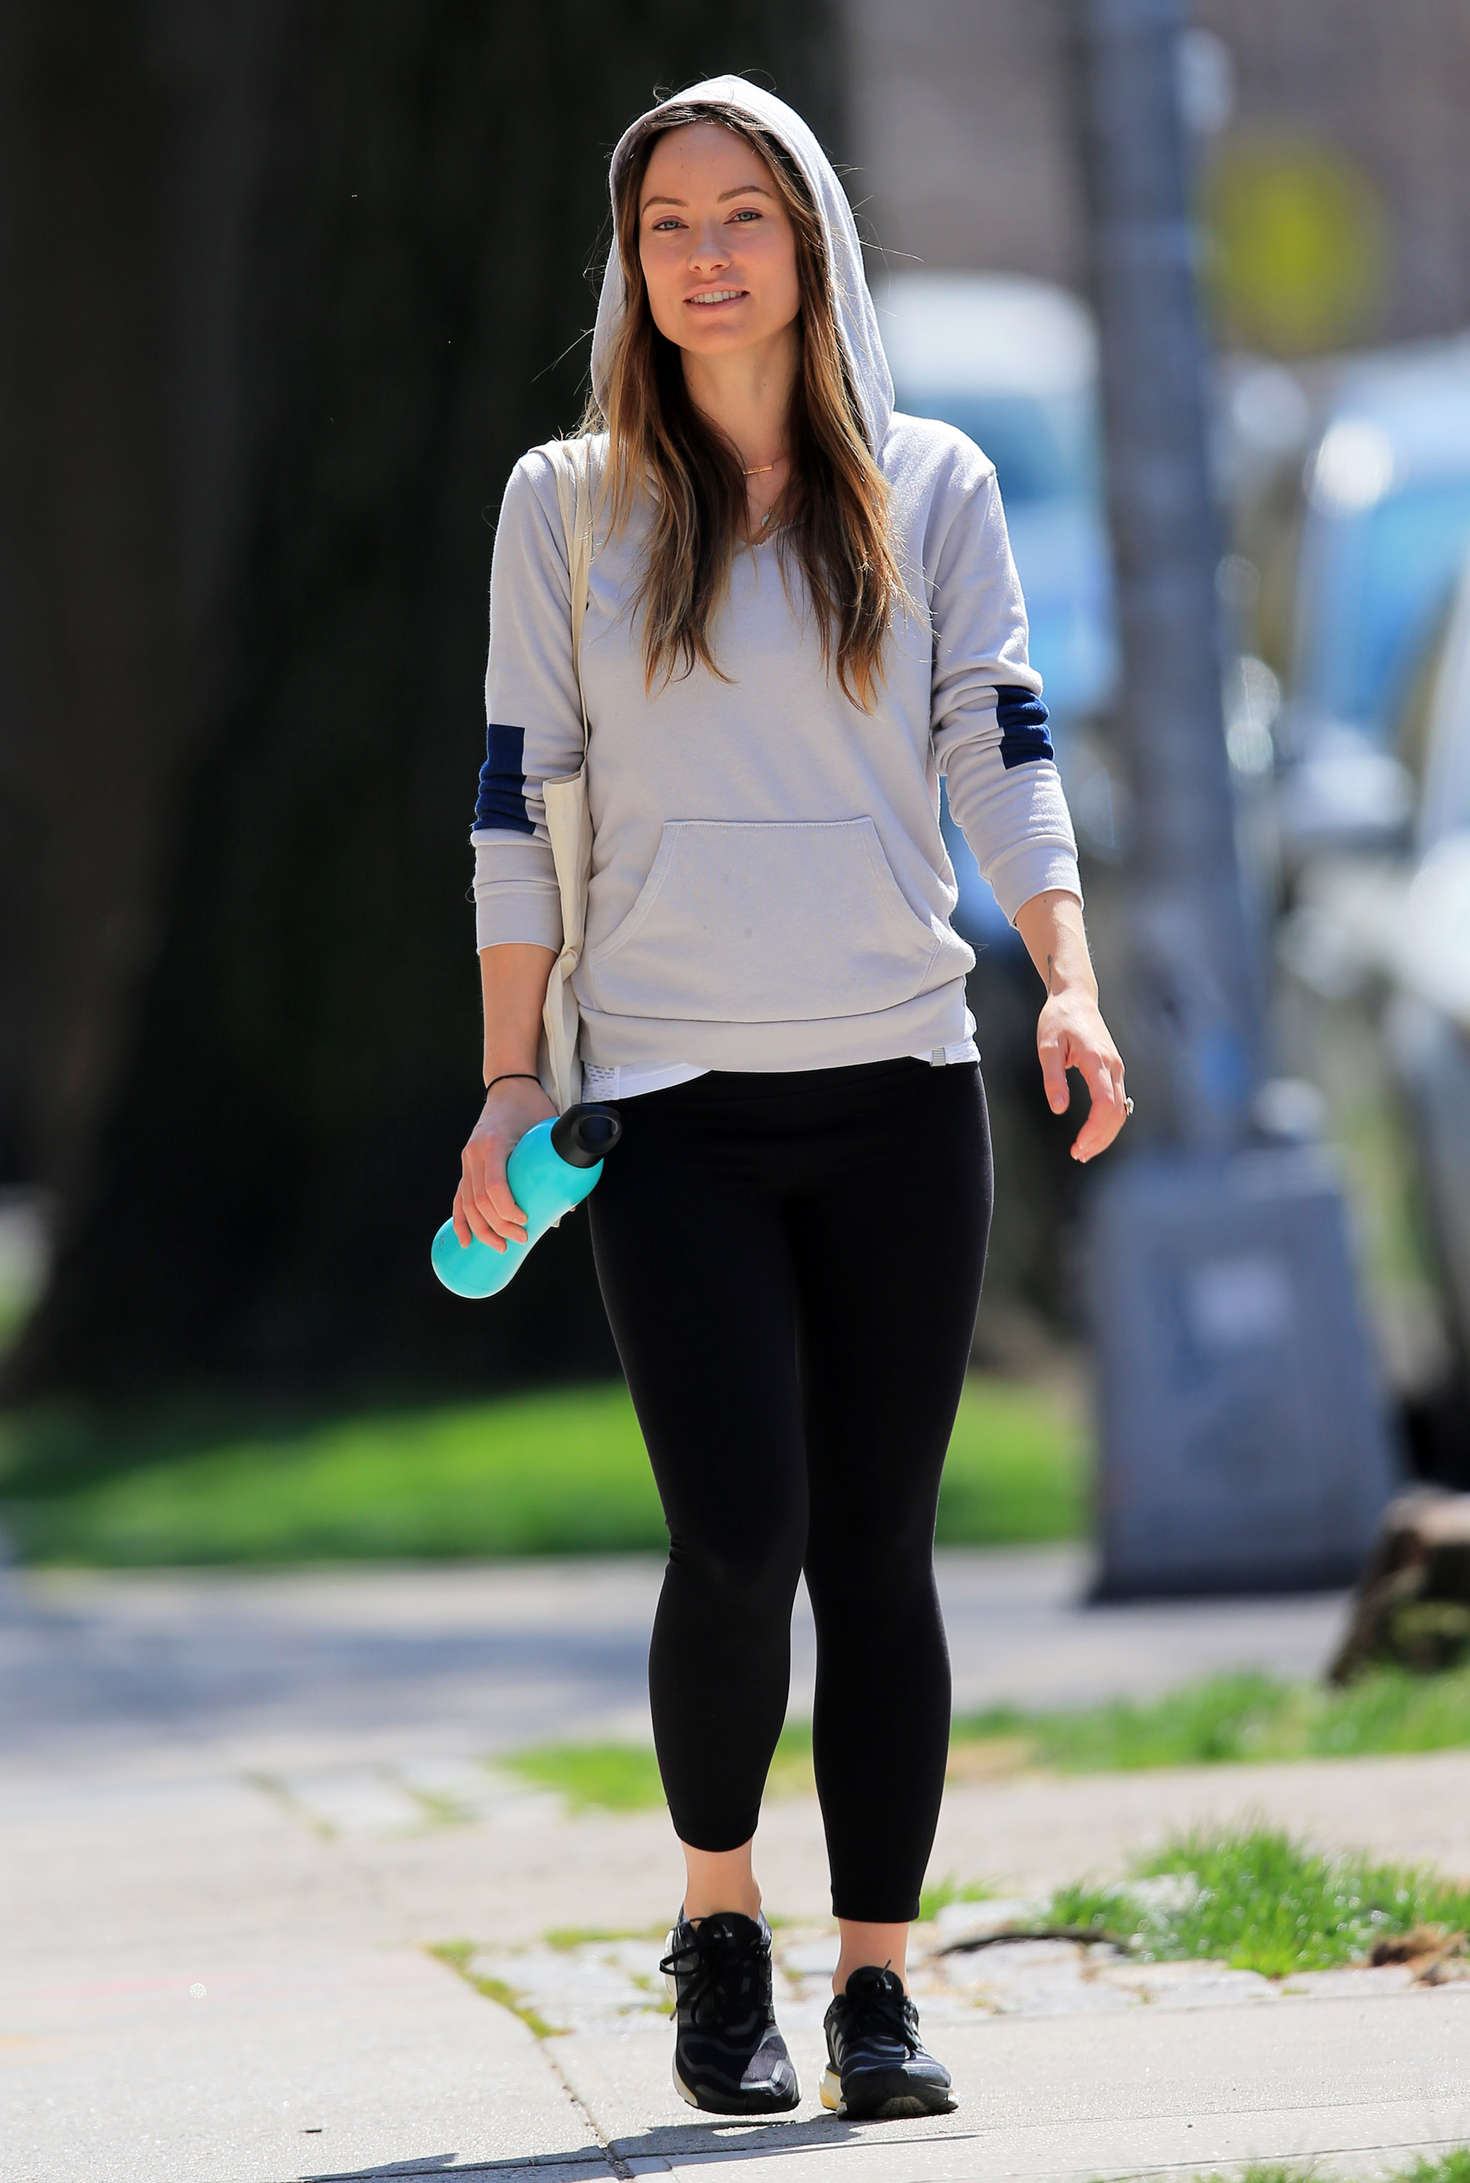 Olivia Wilde In Tights Jogging In Nyc